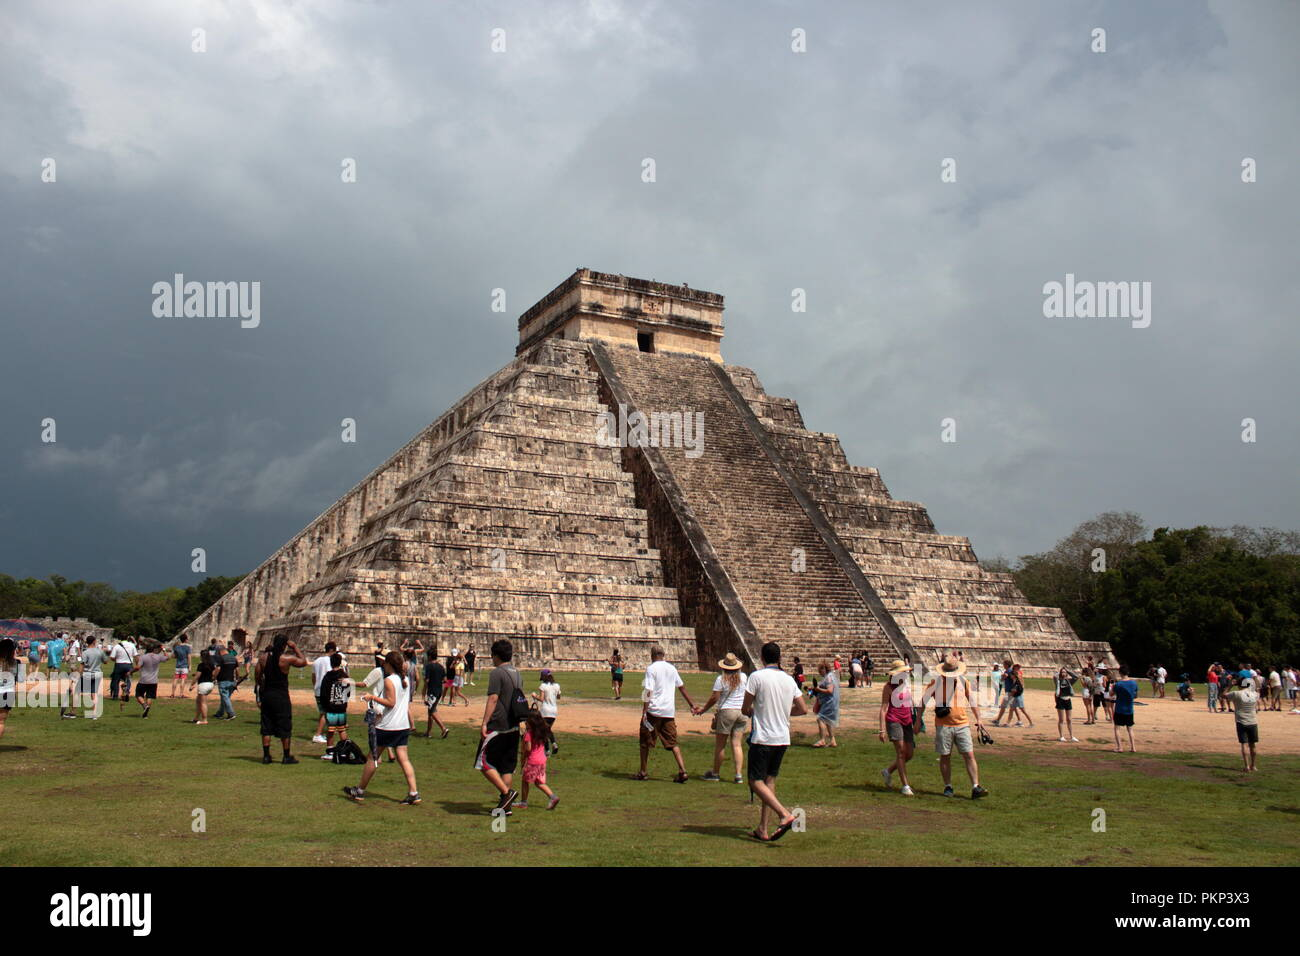 archaeological site of chechen Itzá city state of the Maya Stock Photo